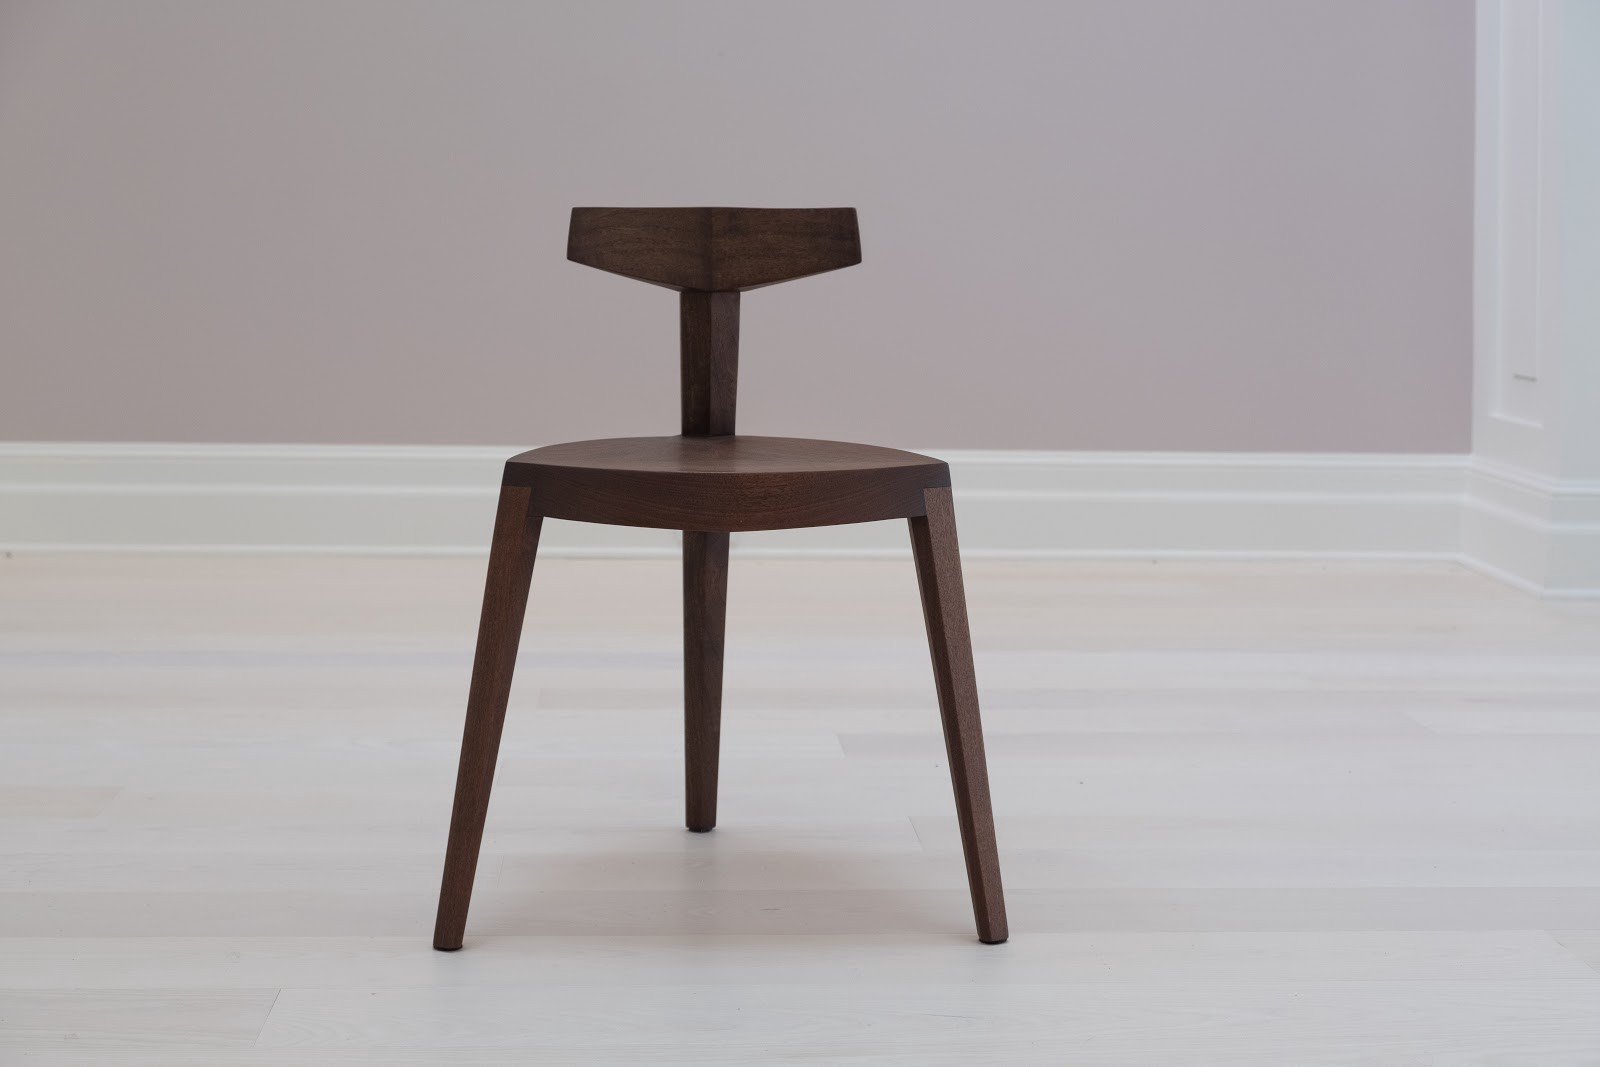 Brown wooden chair with 3 angular legs and a short back made from a vertical rectangular pole with a crossbar at the top.